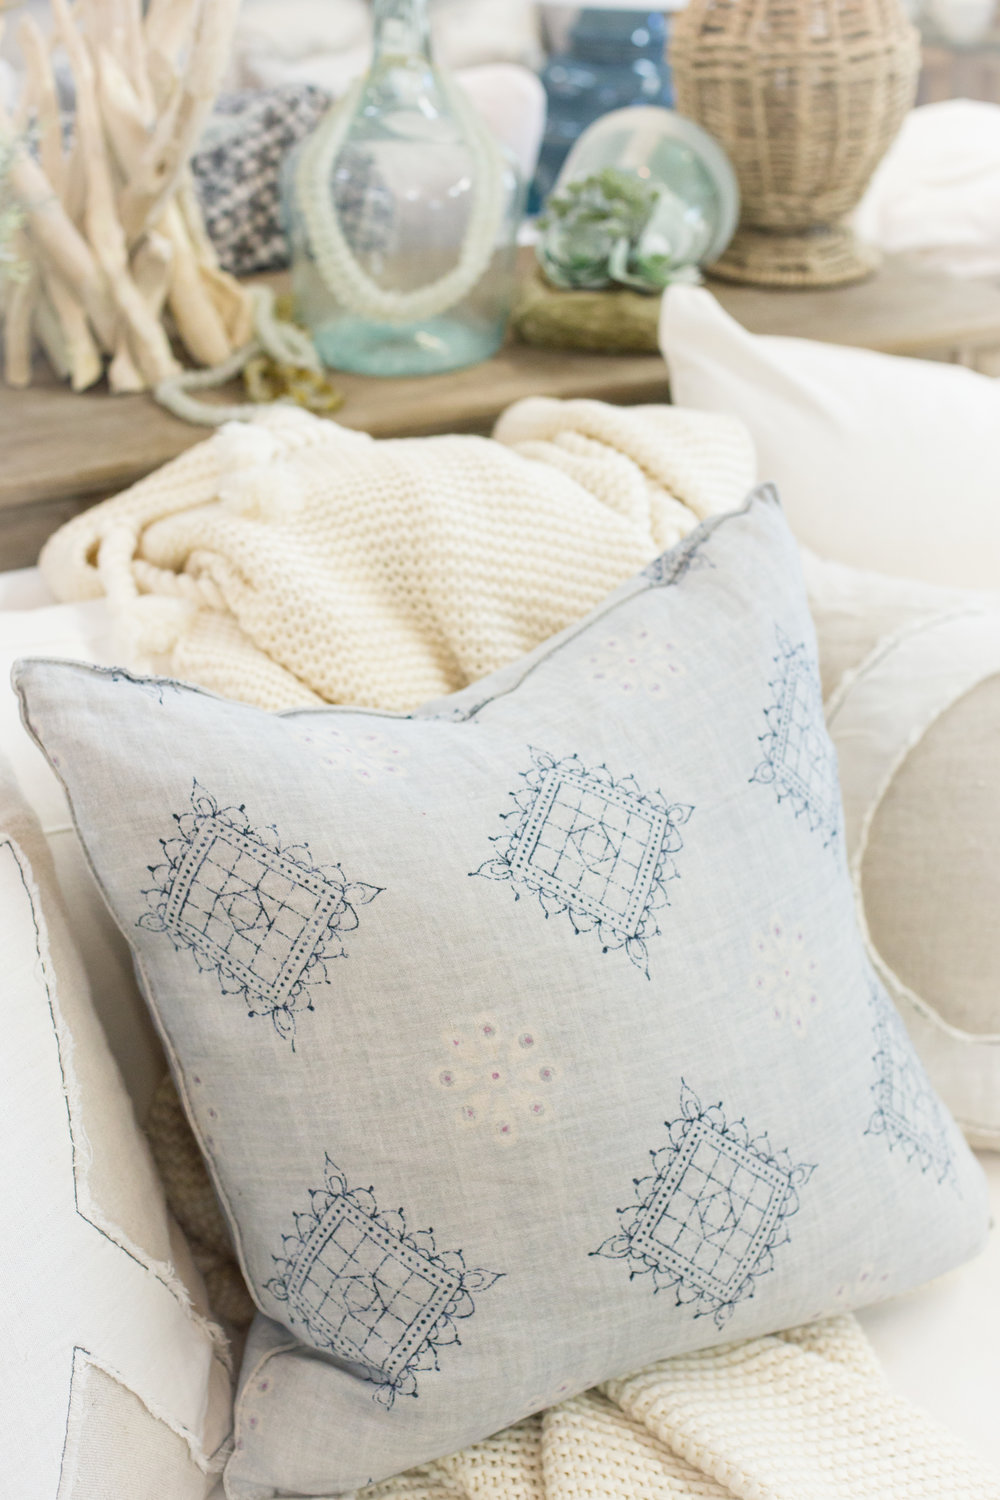 Ocean blue patterned pillow